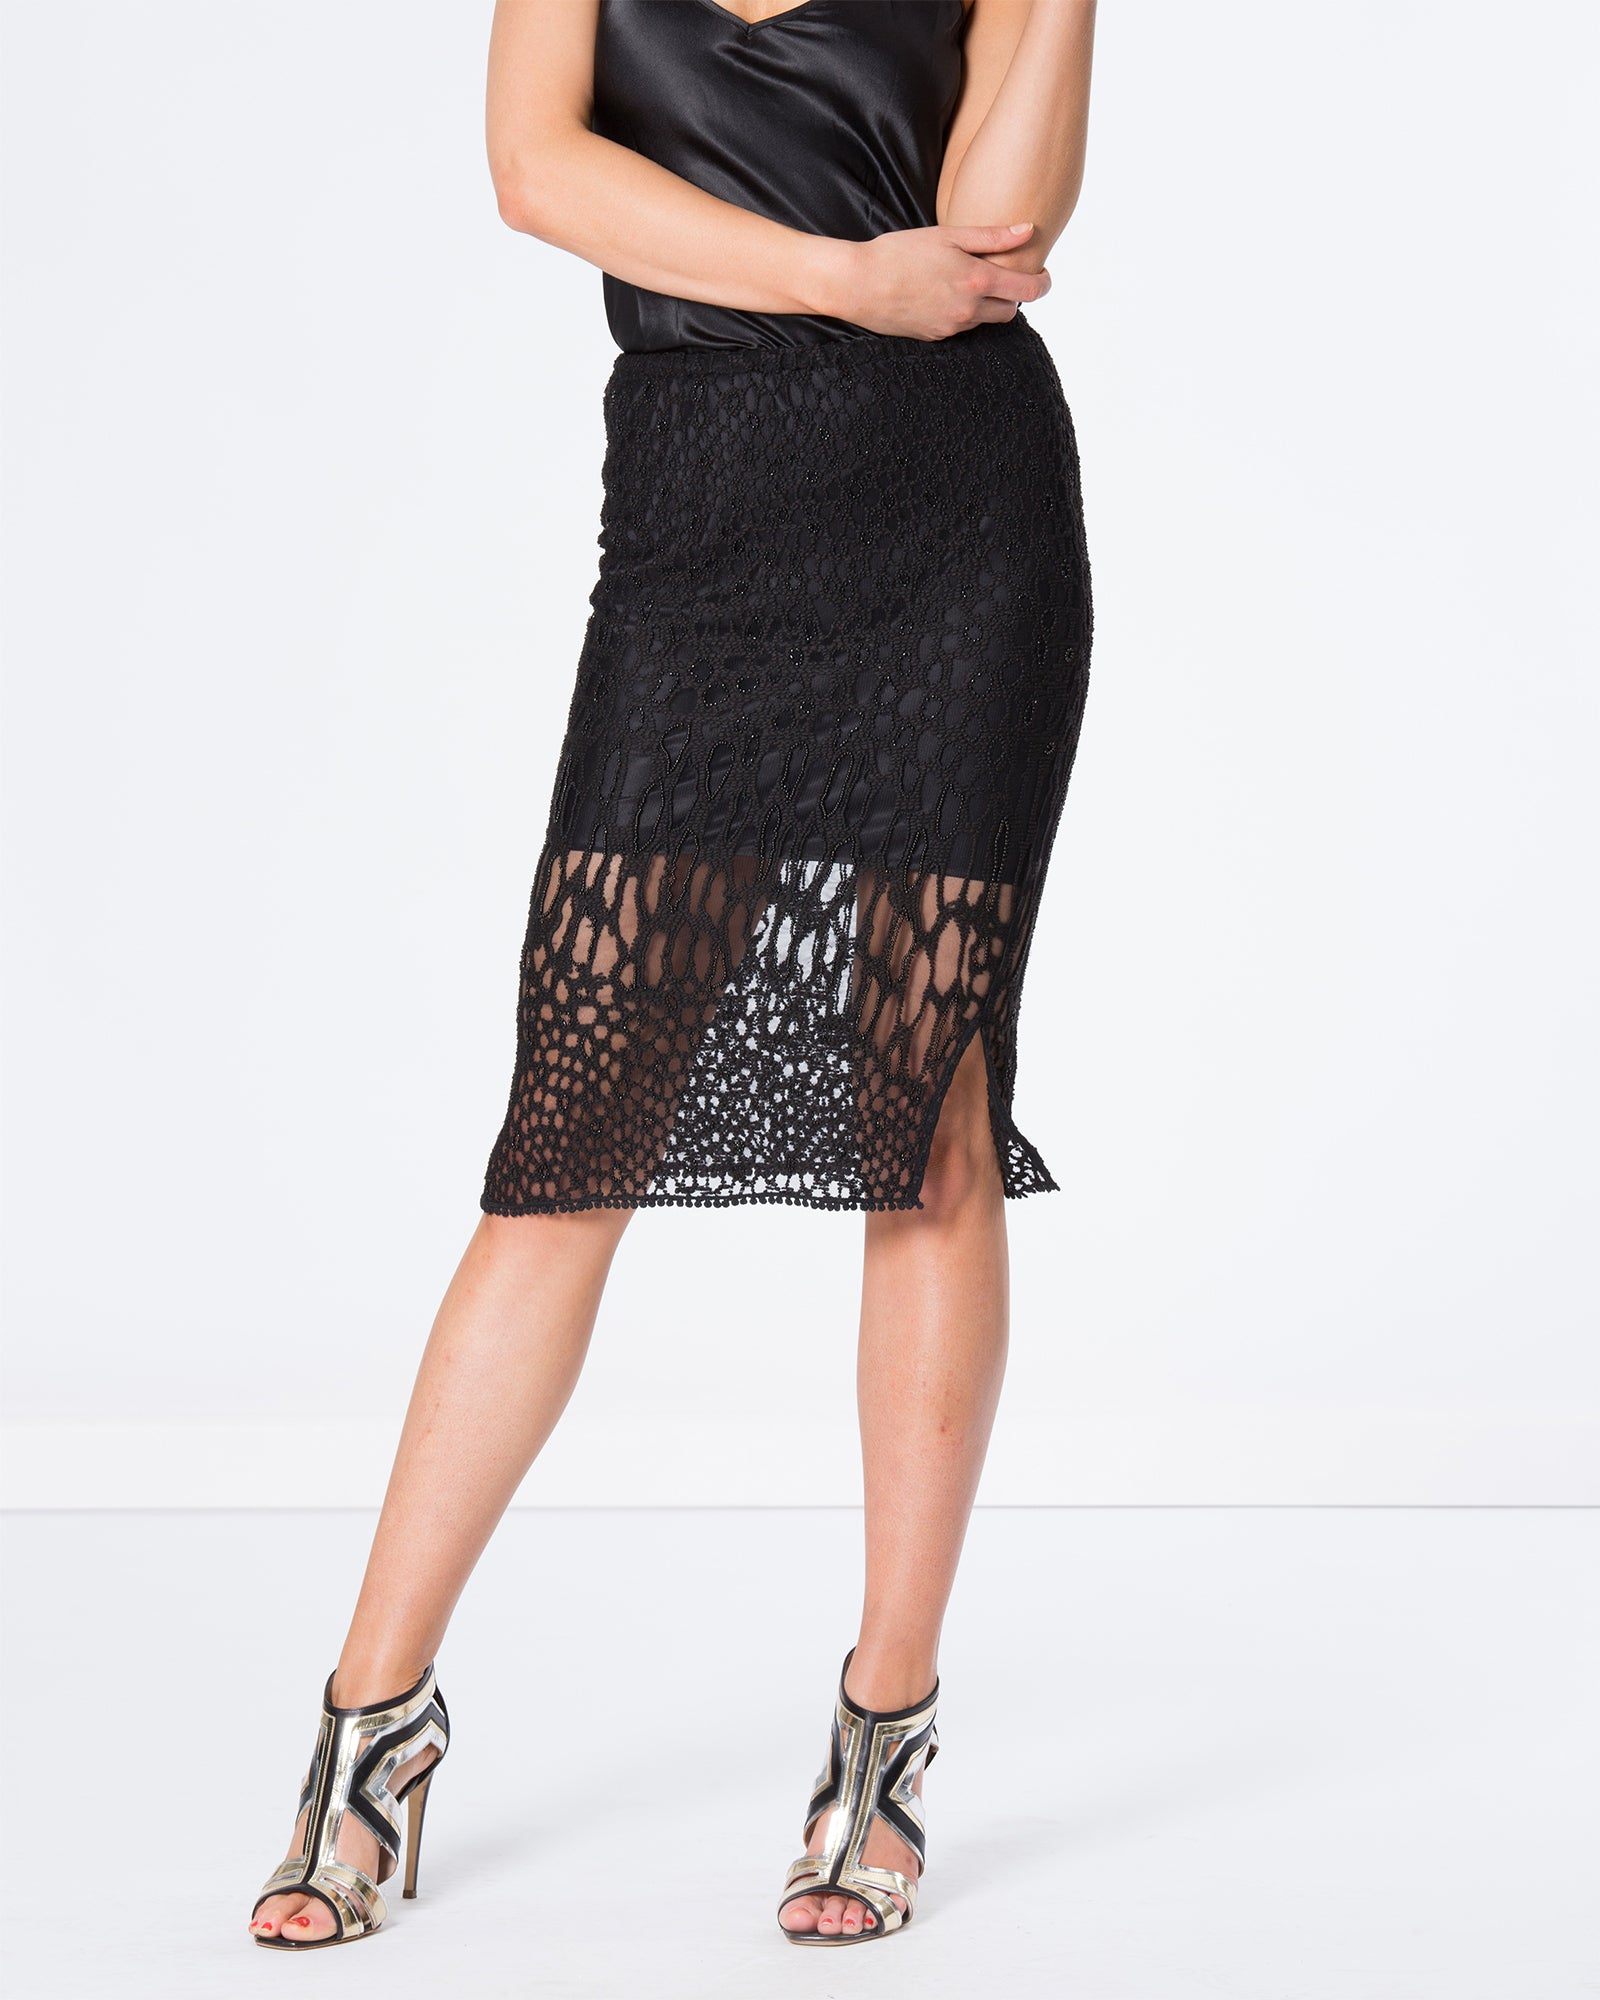 EMBROIDERED BEADED LEOPARD LACE SKIRT